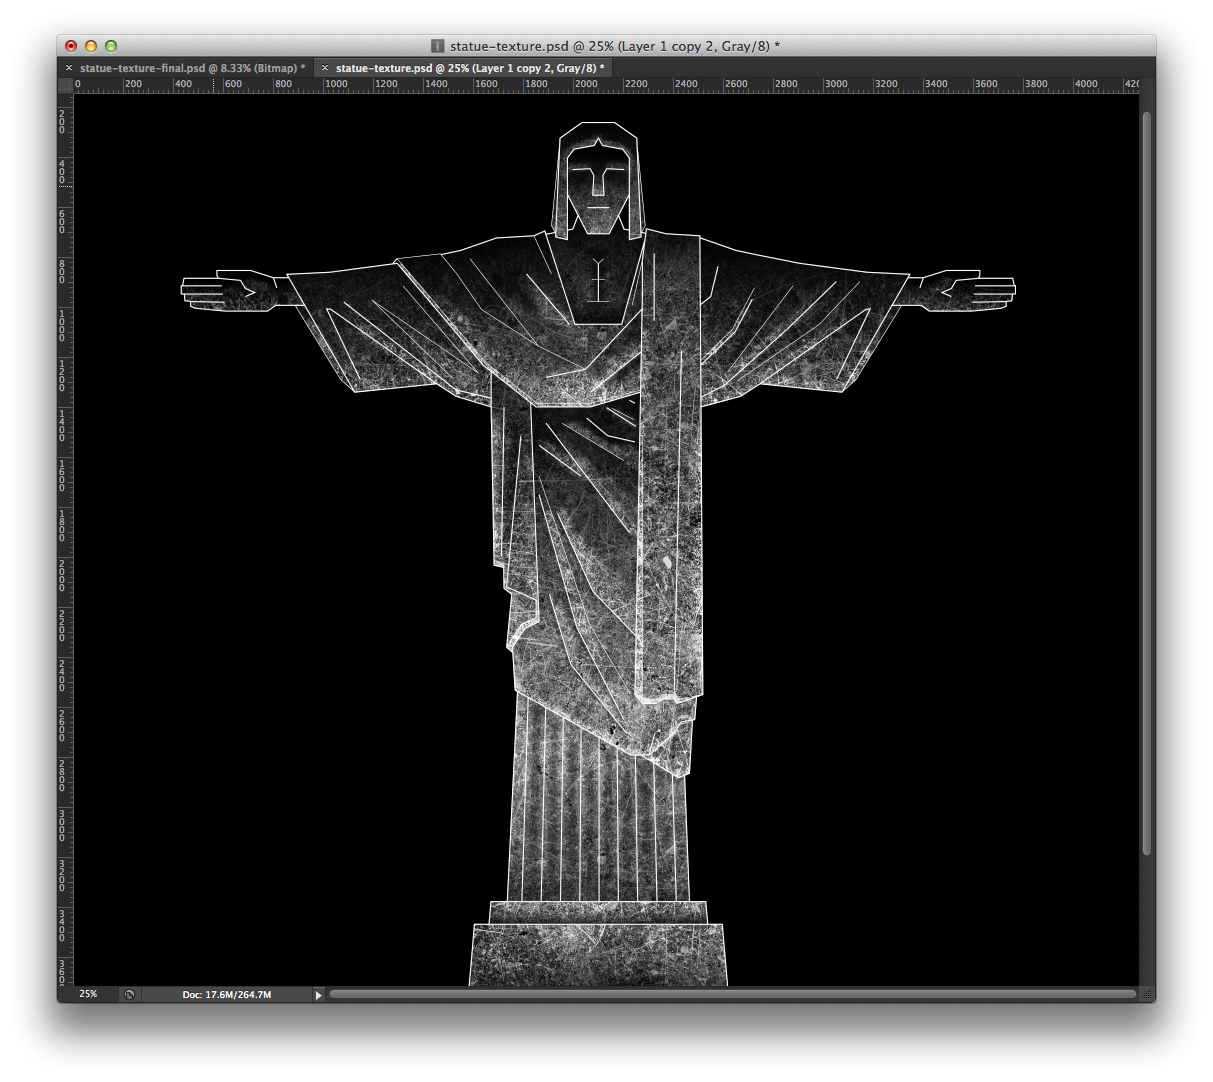 MUSE  ::  Sept 14th, Brazil - image 2 - student project